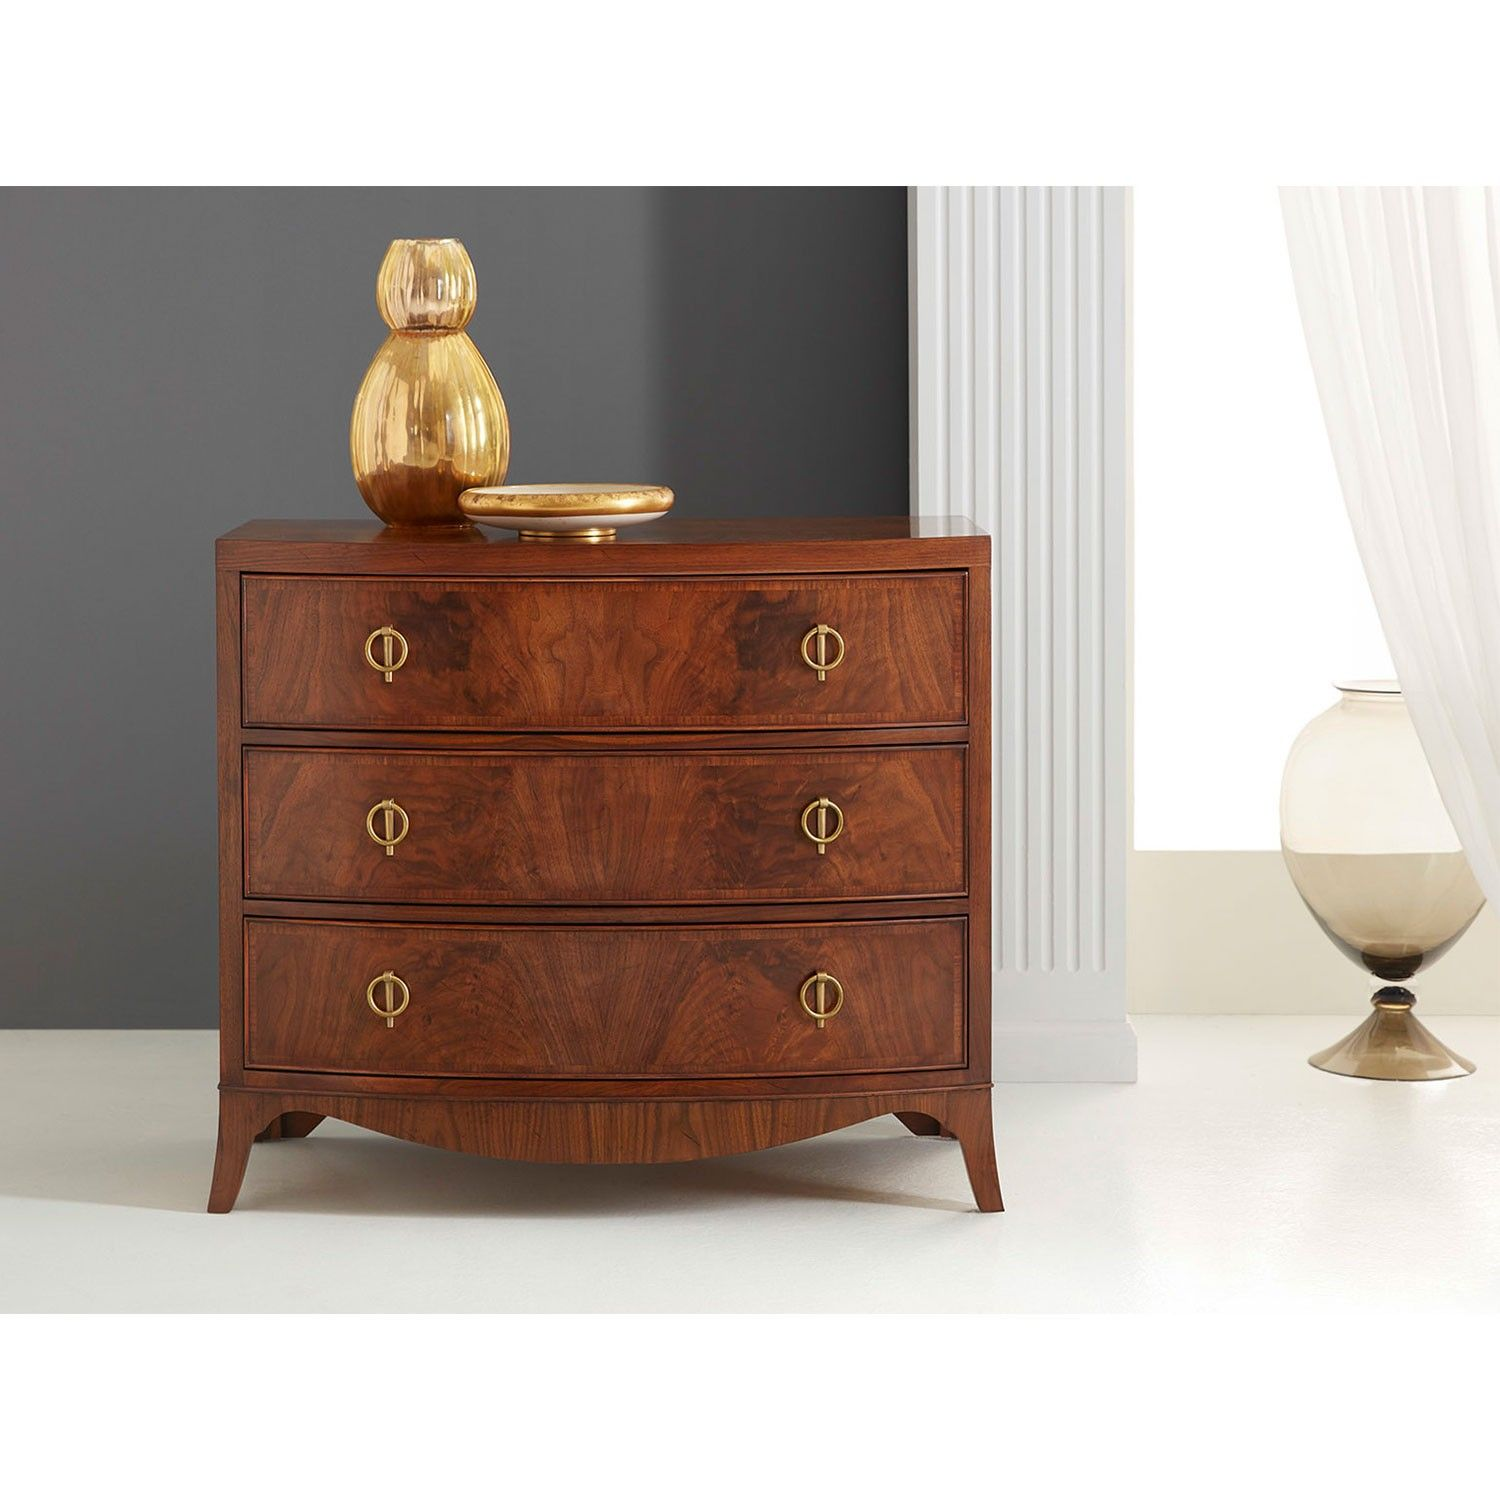 LEXINGTON FURN CHERRY NIGHTSTAND 3 DRAWER CHIPPENDALE BACHELOR CHEST DRESSER